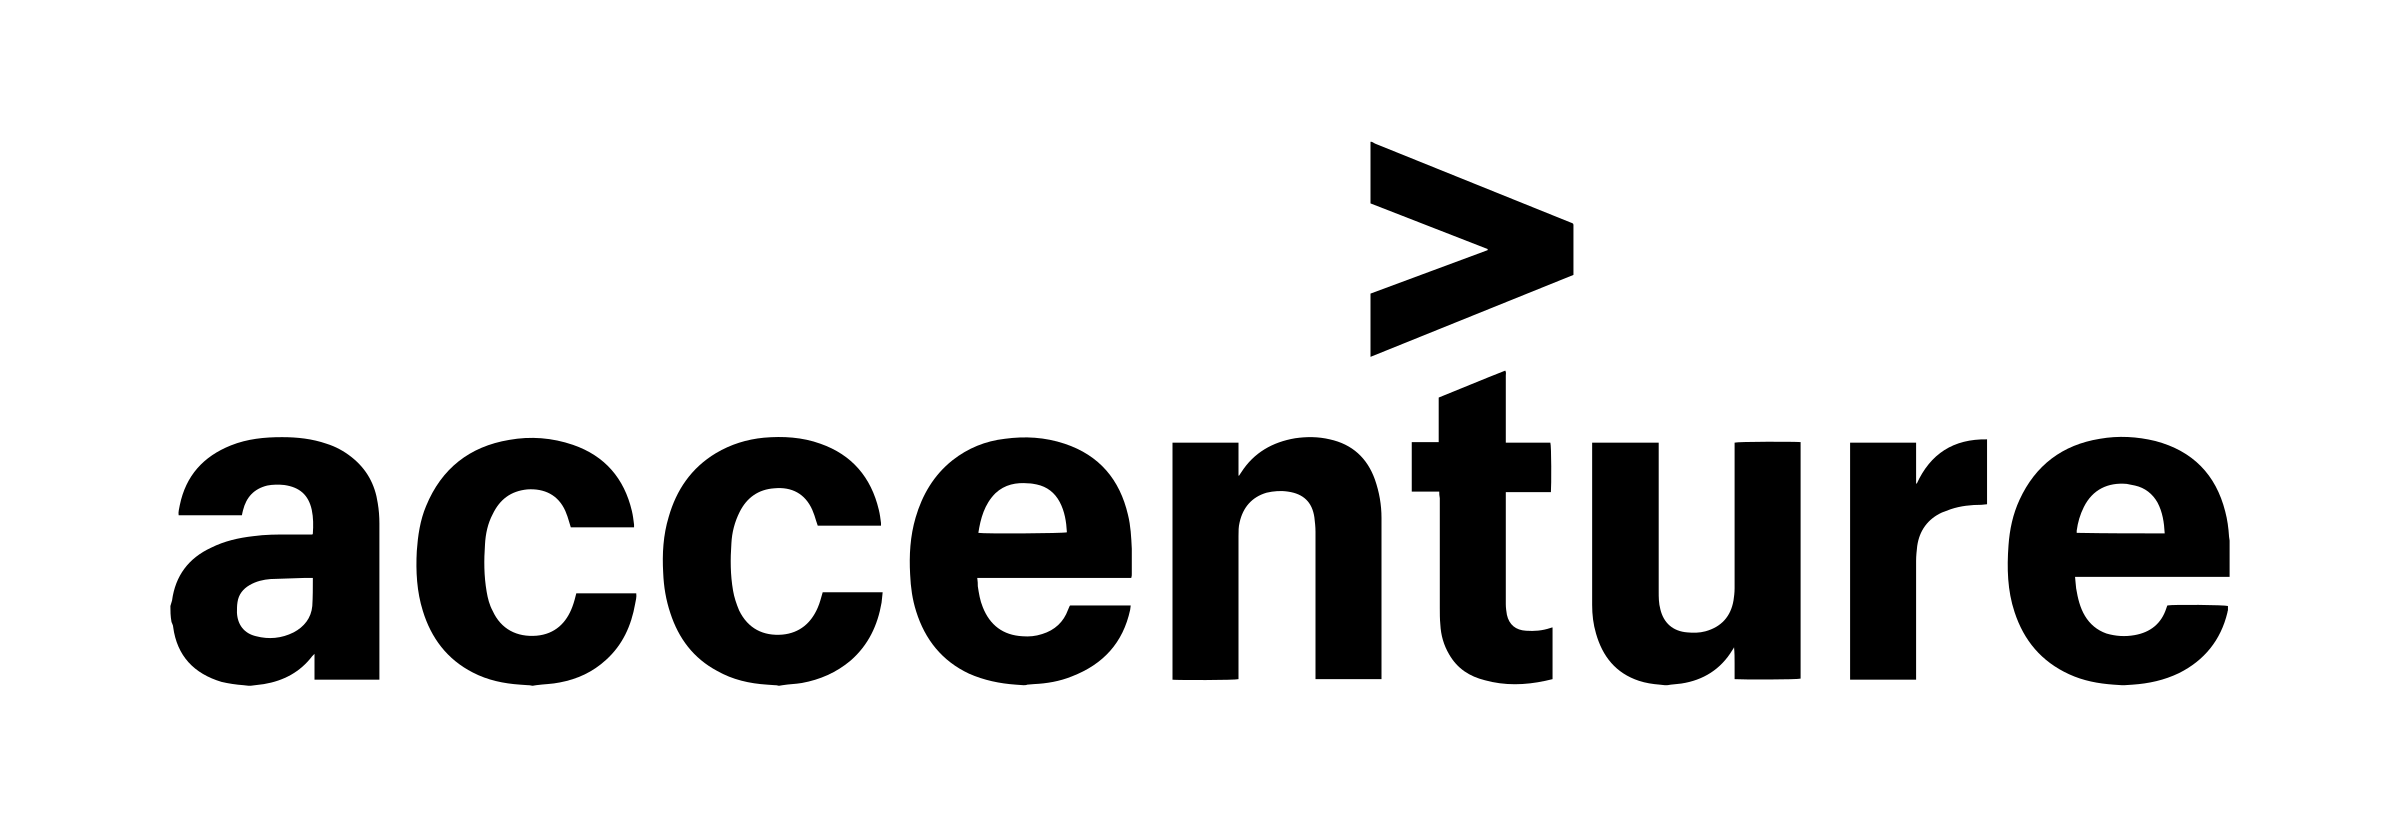 Accenture png logo.png